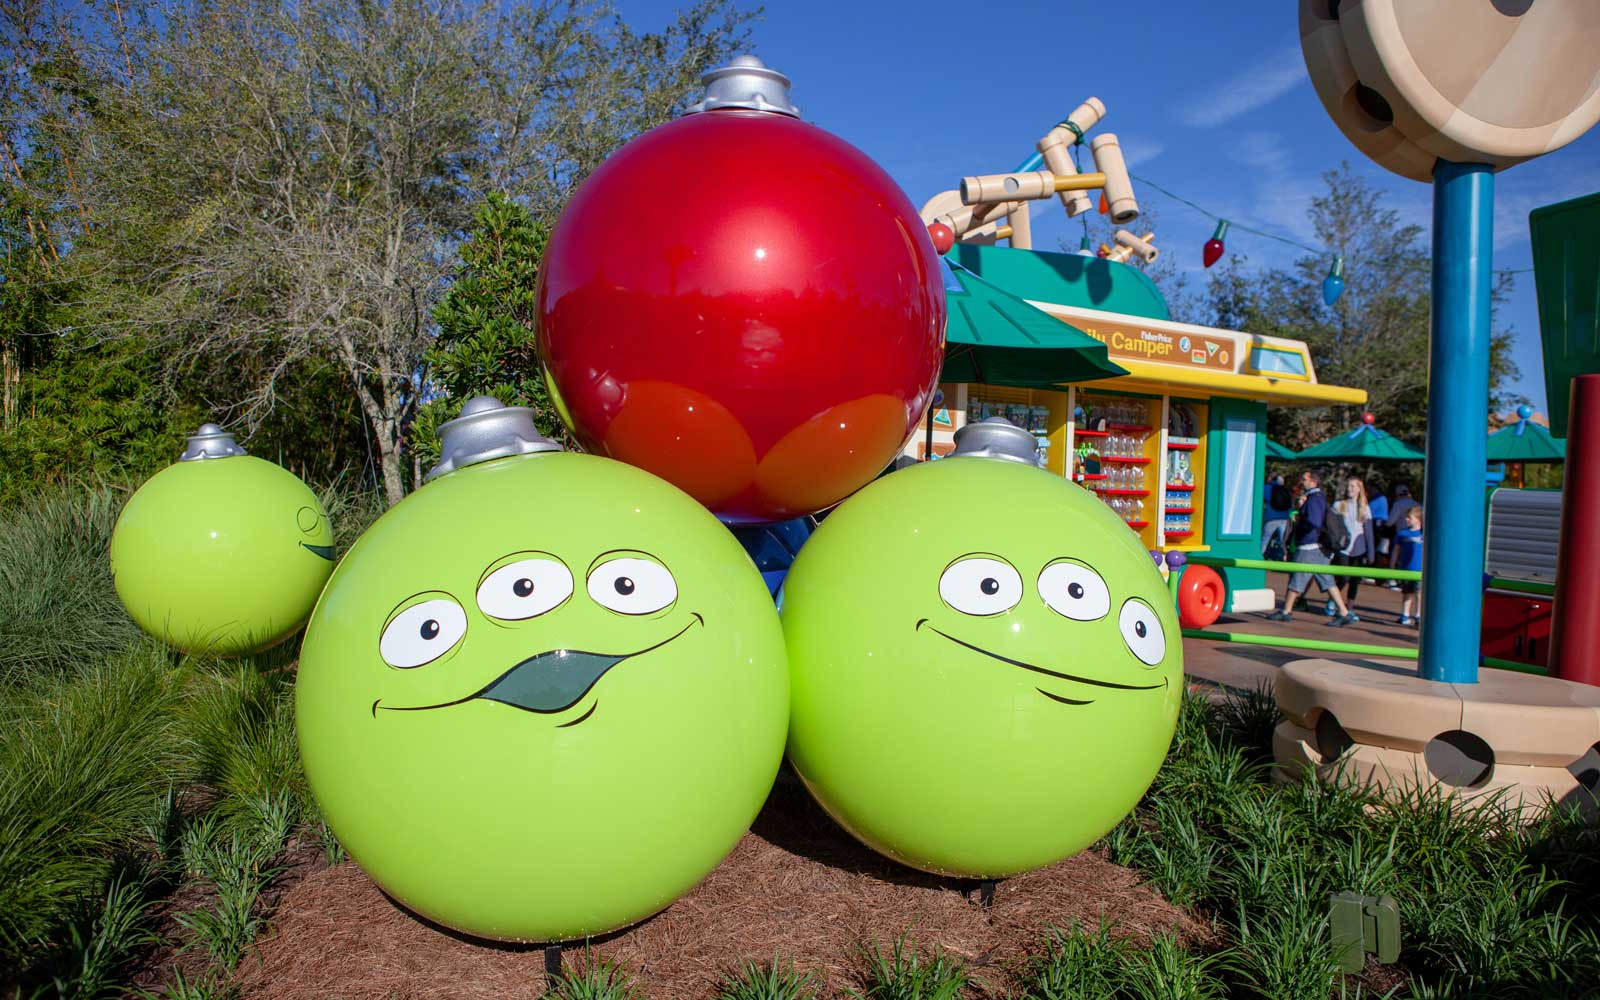 Alien oraments at Toy Story Land